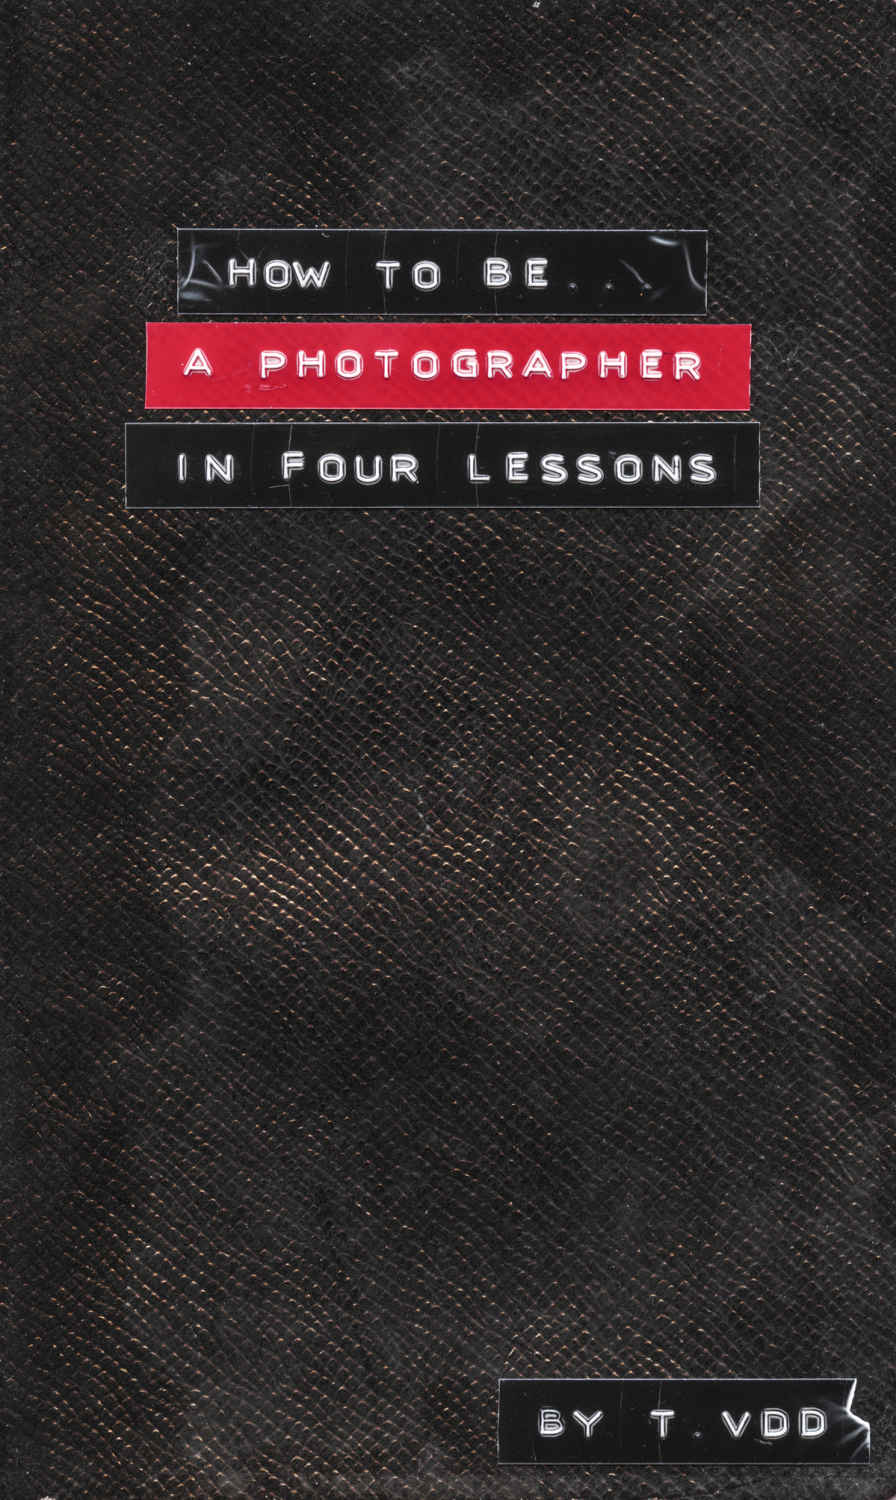 Couverture de How to Be a Photographer in 4 lessons publié aux Éditions André Frère